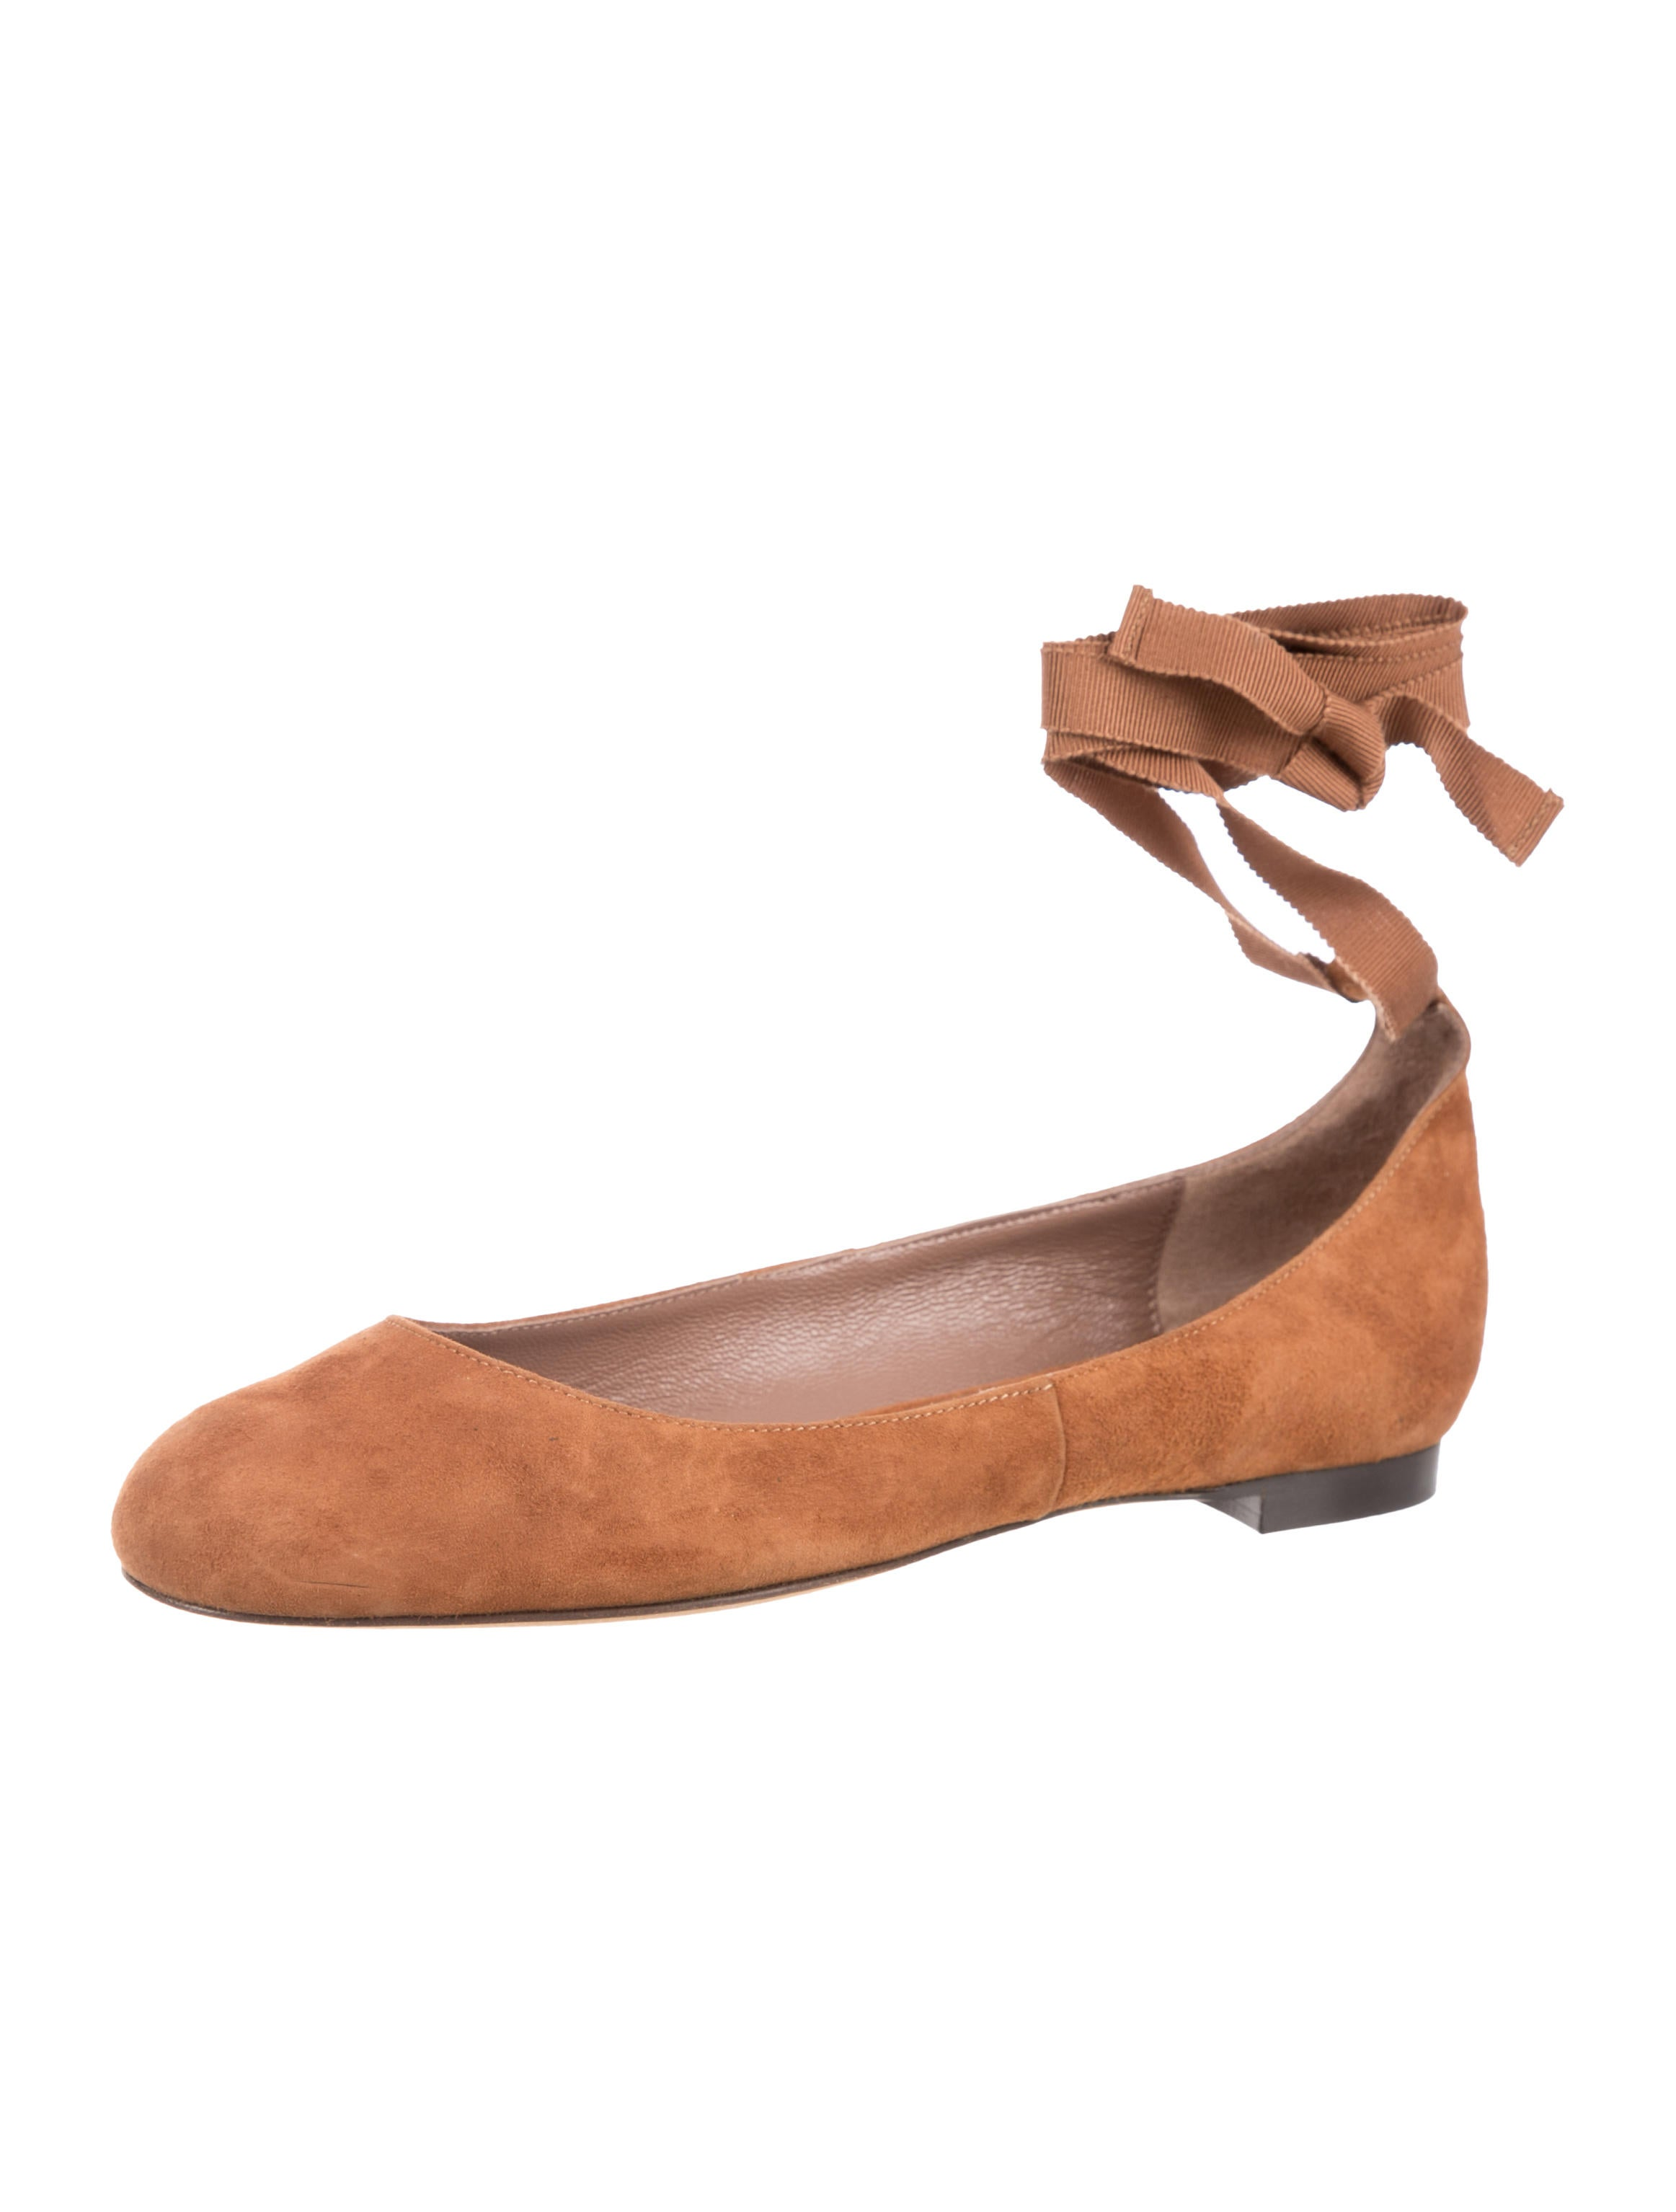 Tabitha Simmons Daria Suede Flats w/ Tags 100% original how much cheap price outlet ebay great deals online outlet huge surprise aAaS0fA